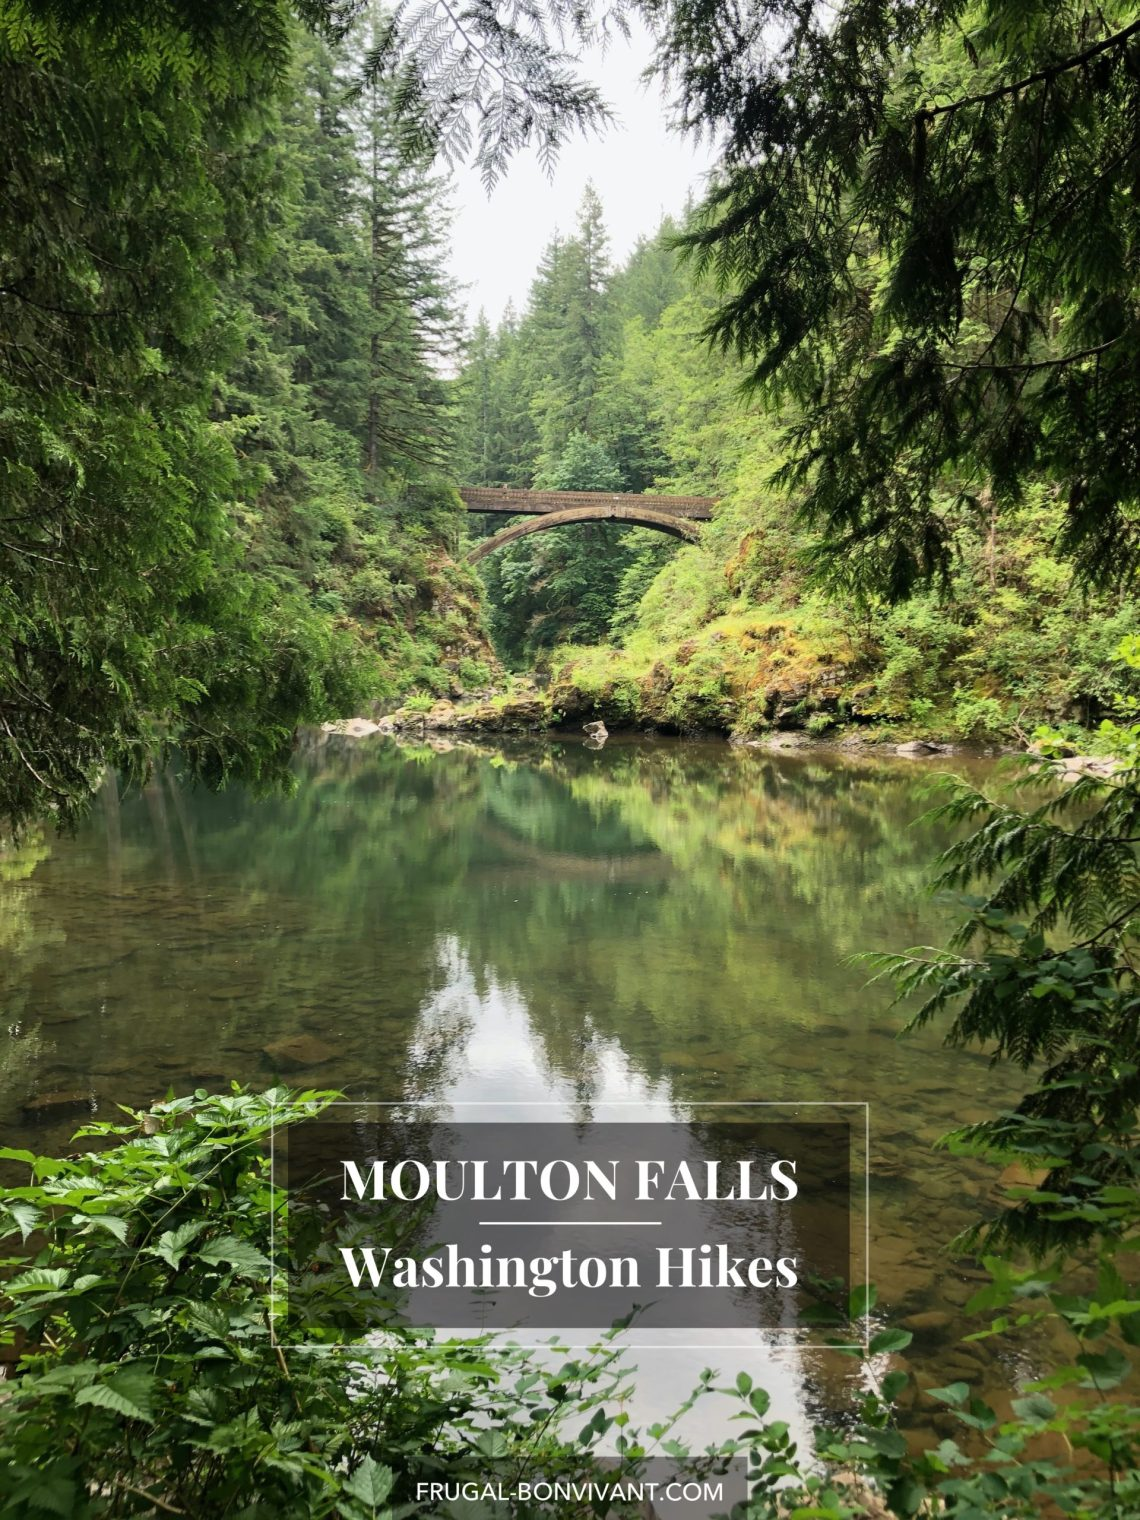 Moulton Falls Washington Hikes